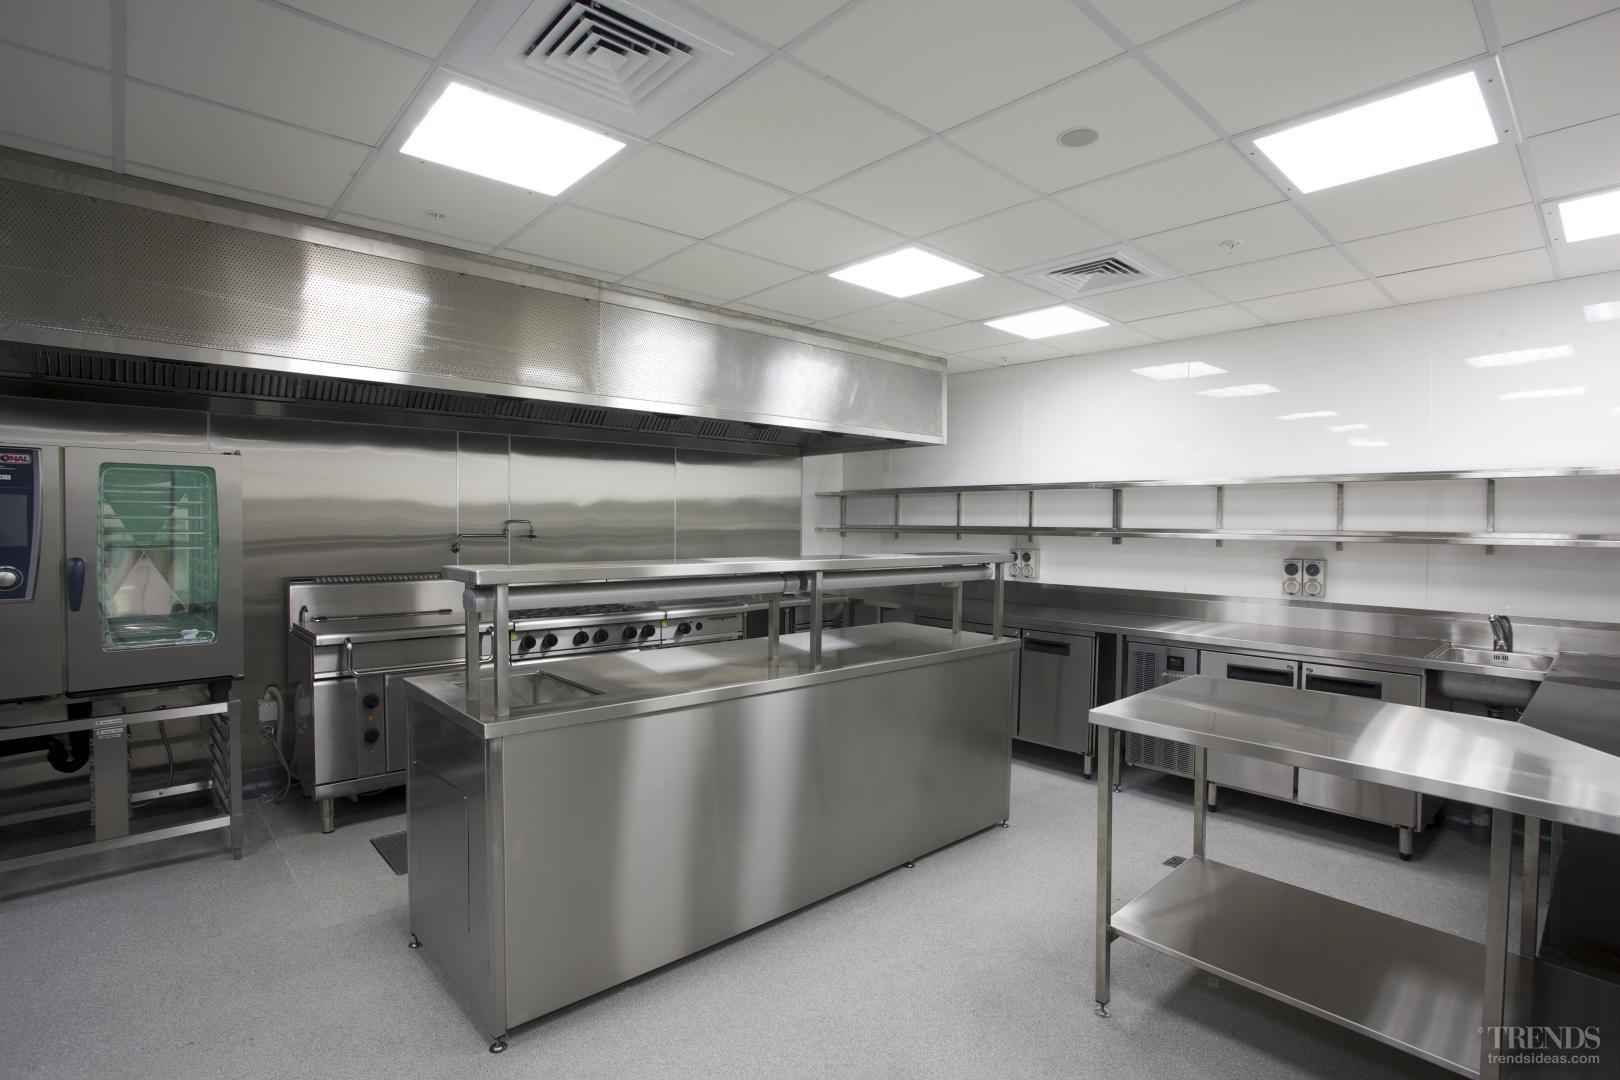 Catering to the times wildfire fit out of commercial kitchen for anz renovation - Commercial kitchen designer ...